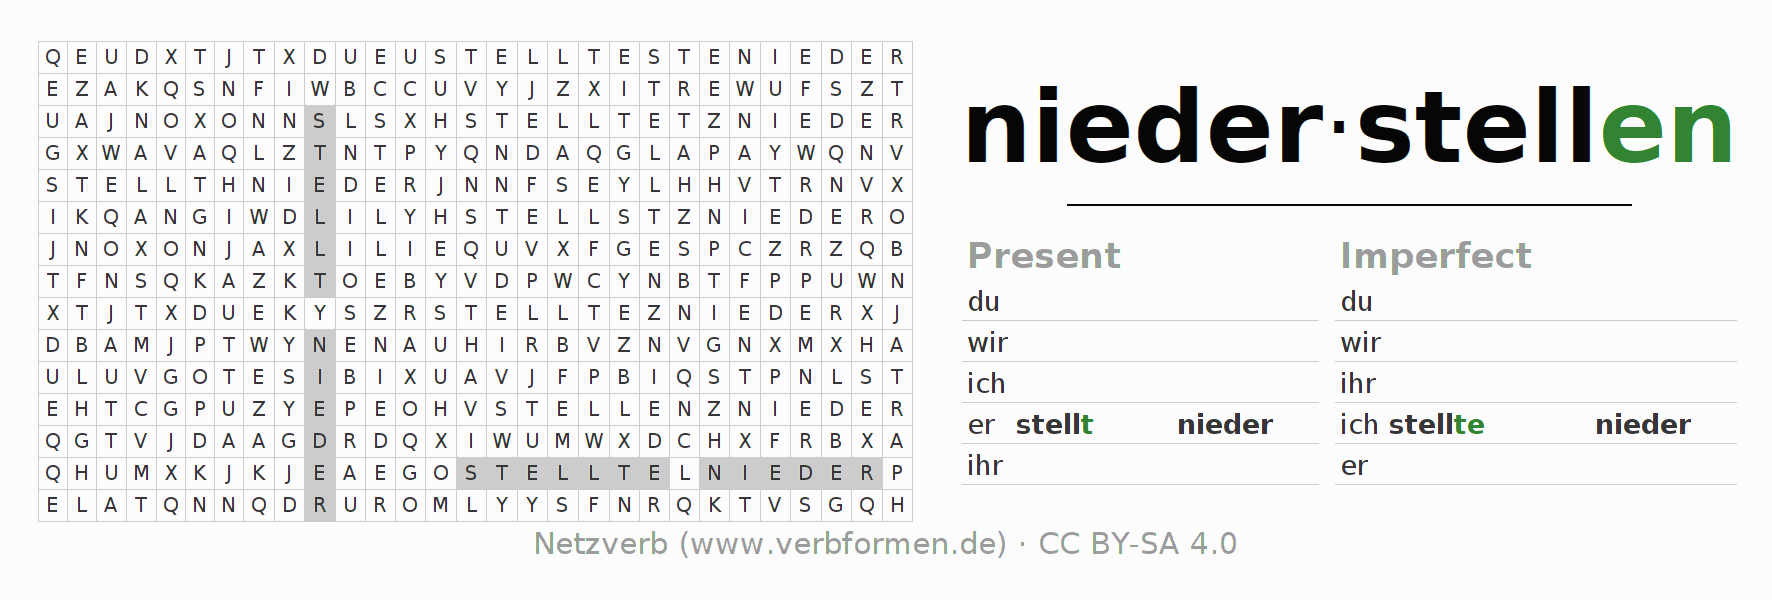 Word search puzzle for the conjugation of the verb niederstellen